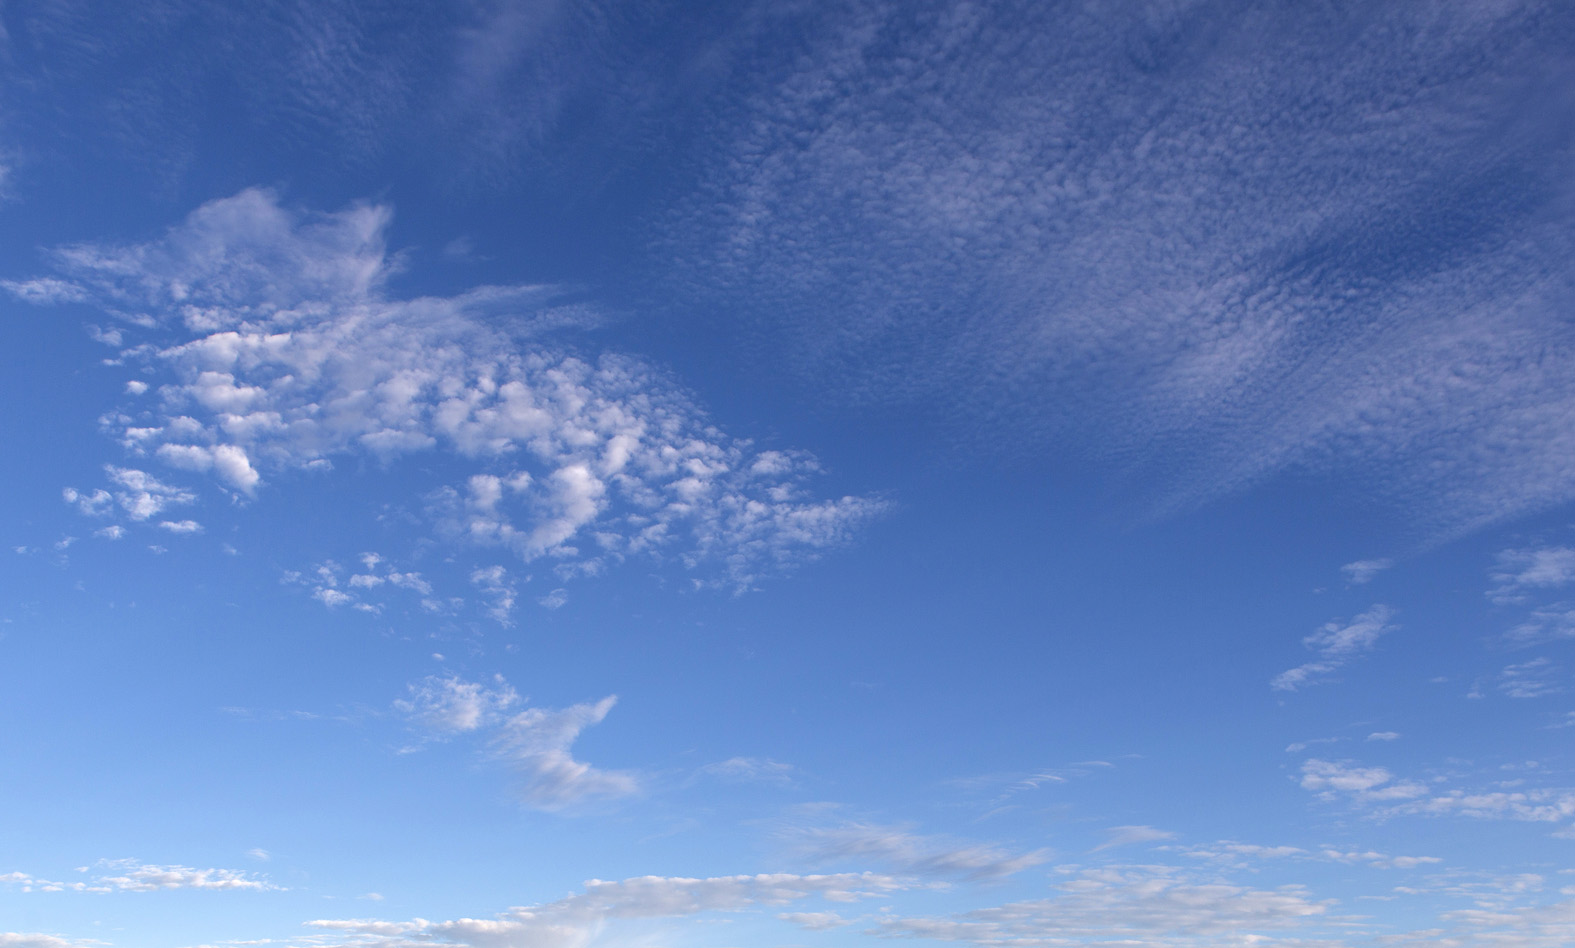 Blue sky with light clouds